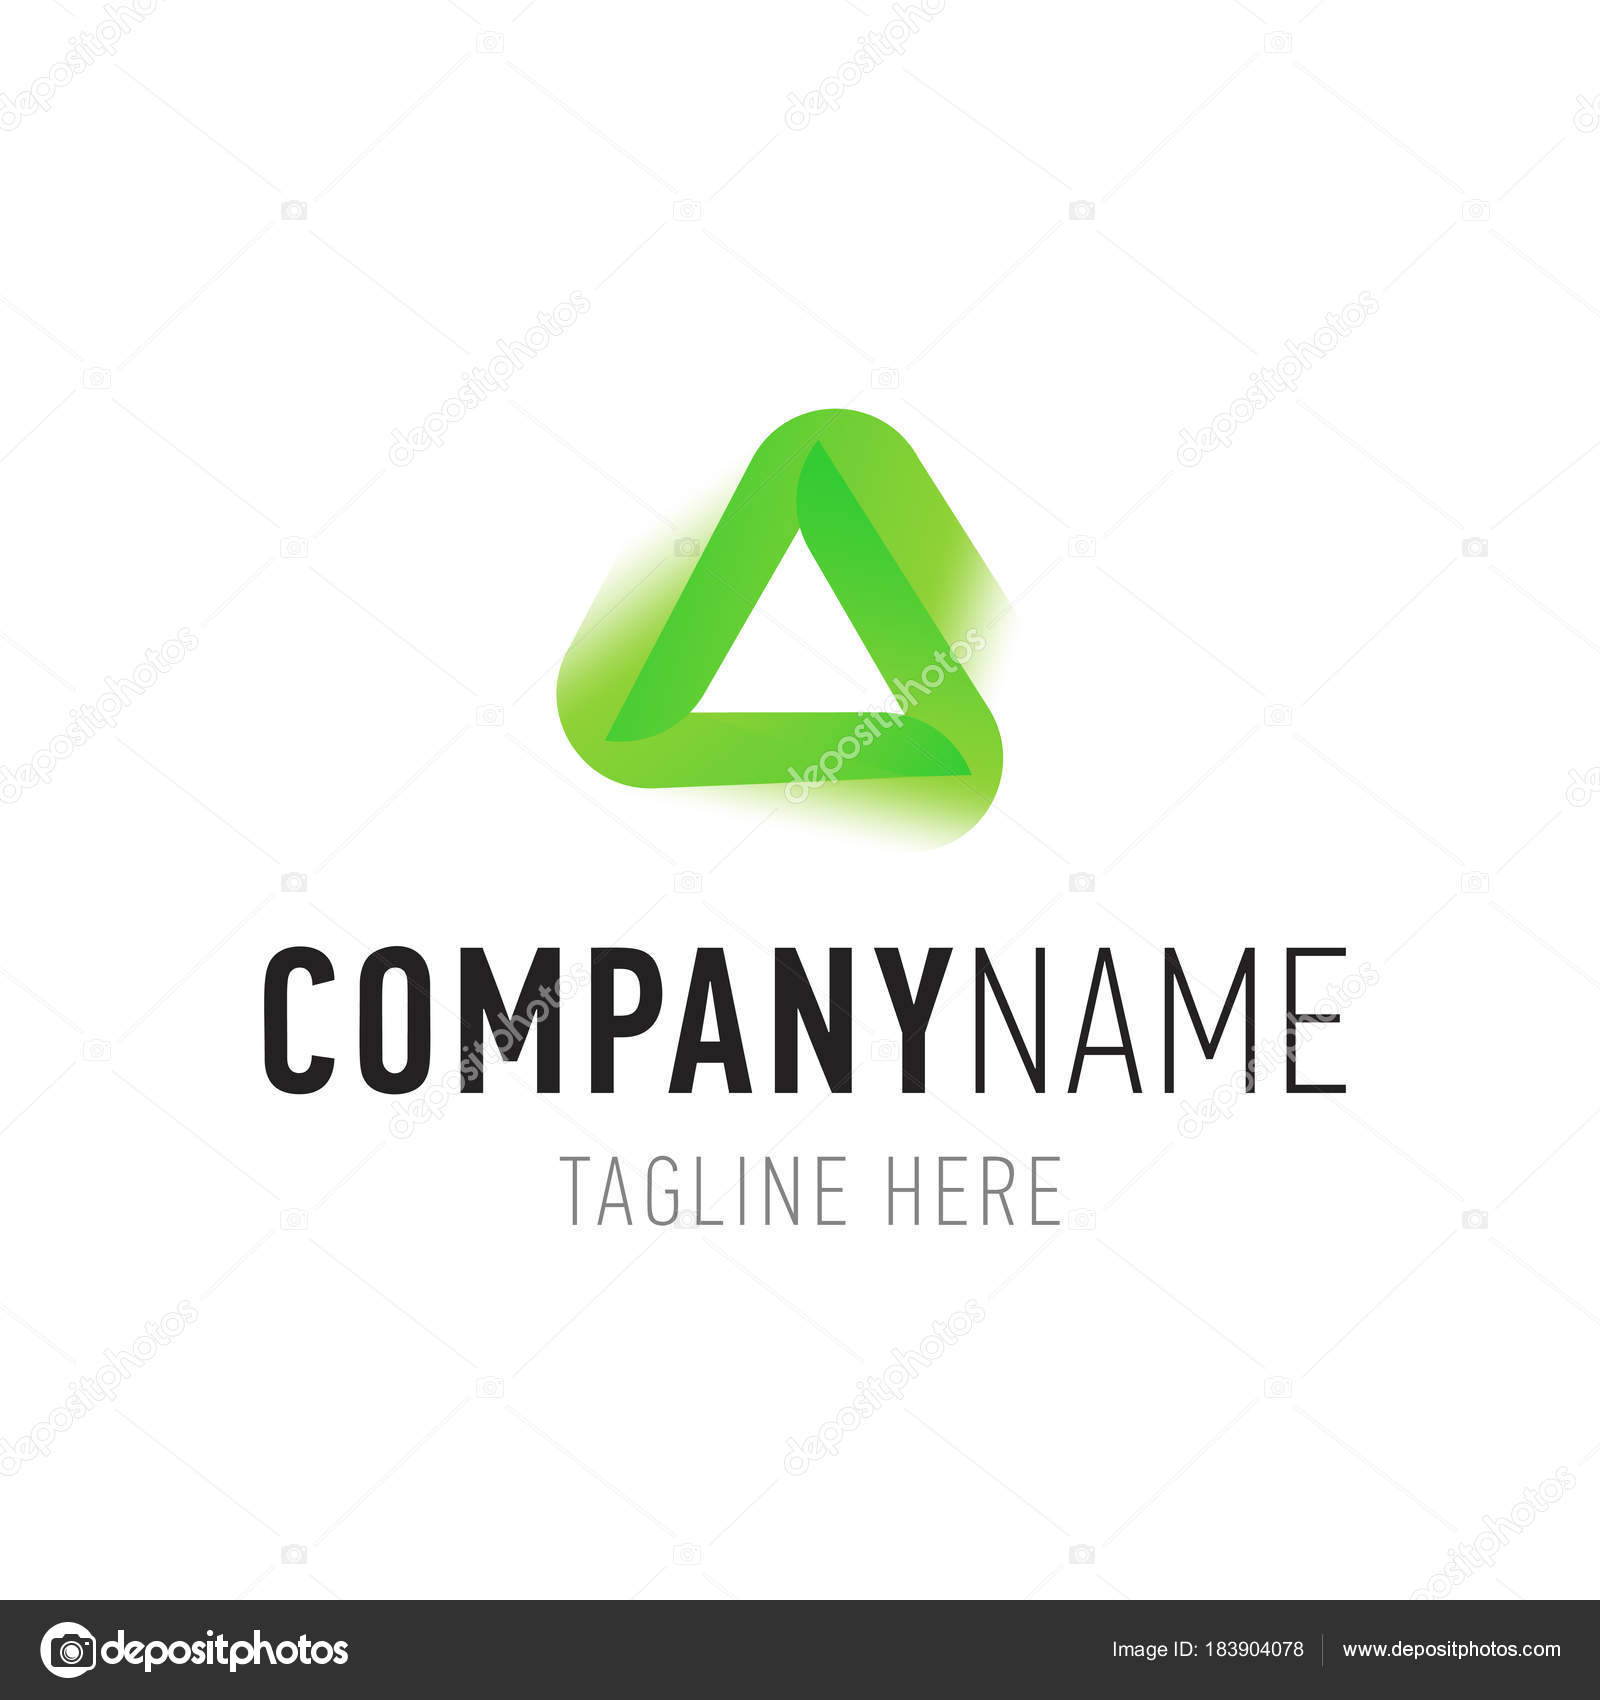 Triangle green abstract isolated element for logo design stock illustration triangle green abstract isolated element for logo design corporate identity symbols with company name buycottarizona